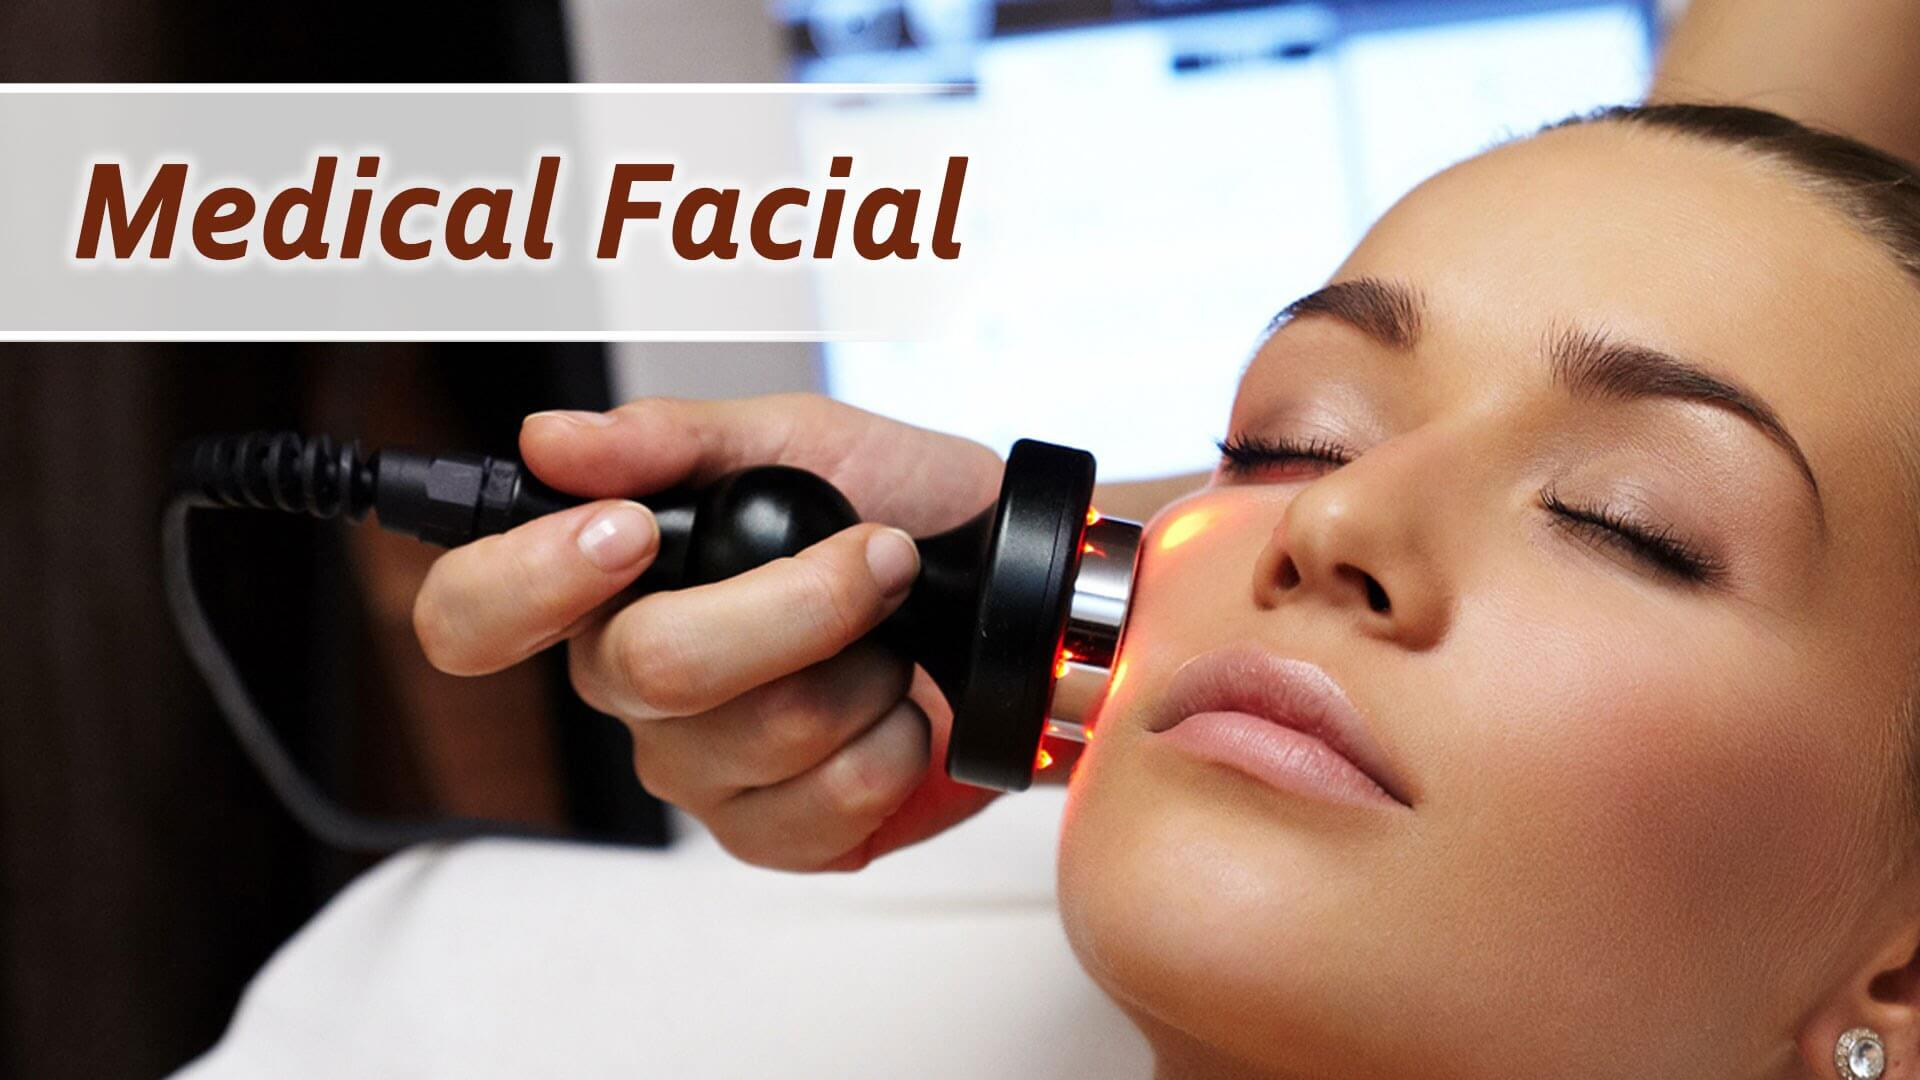 medical facial cleansing